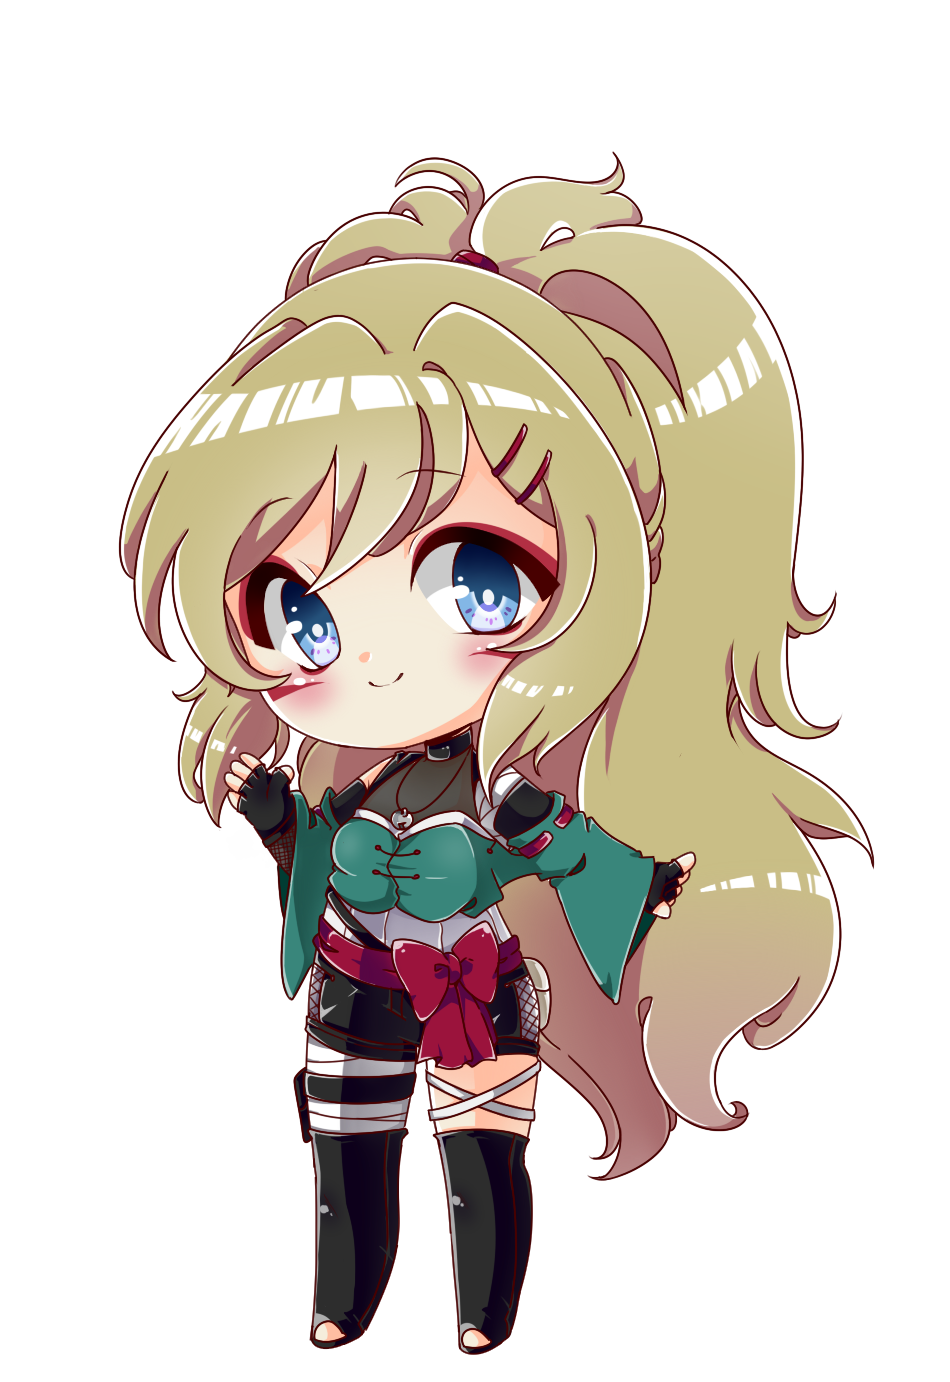 chibi neko by MaiKyunoichi on DeviantArtAnime Chibi Neko Base